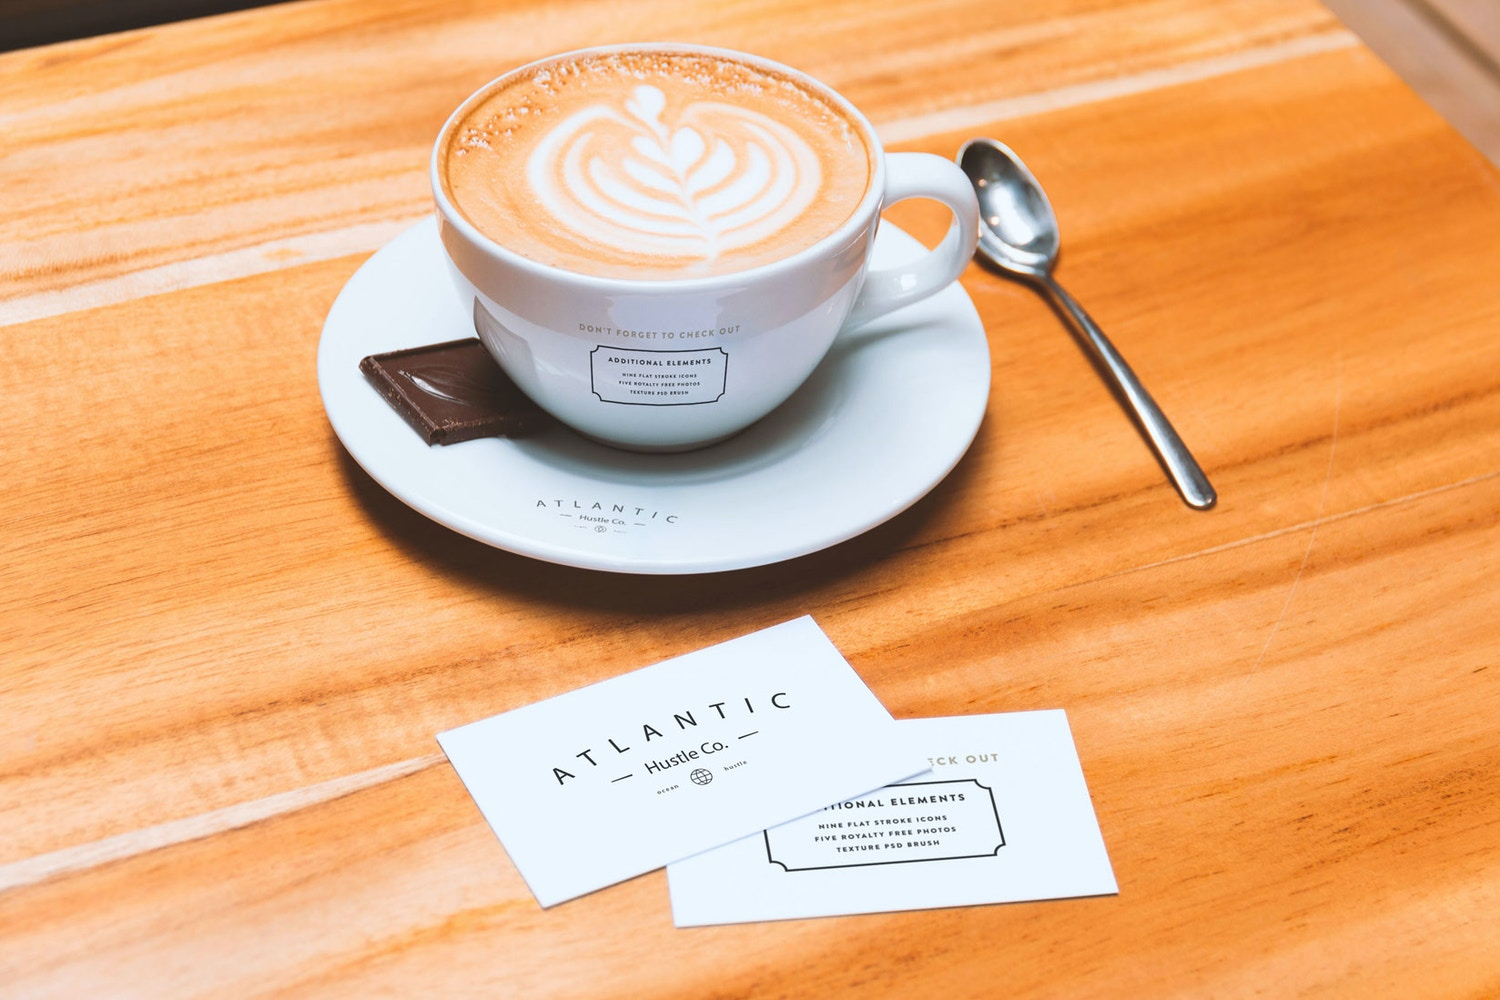 Business Cards and Coffee Cup Mockup by Original Mockups on Original Mockups